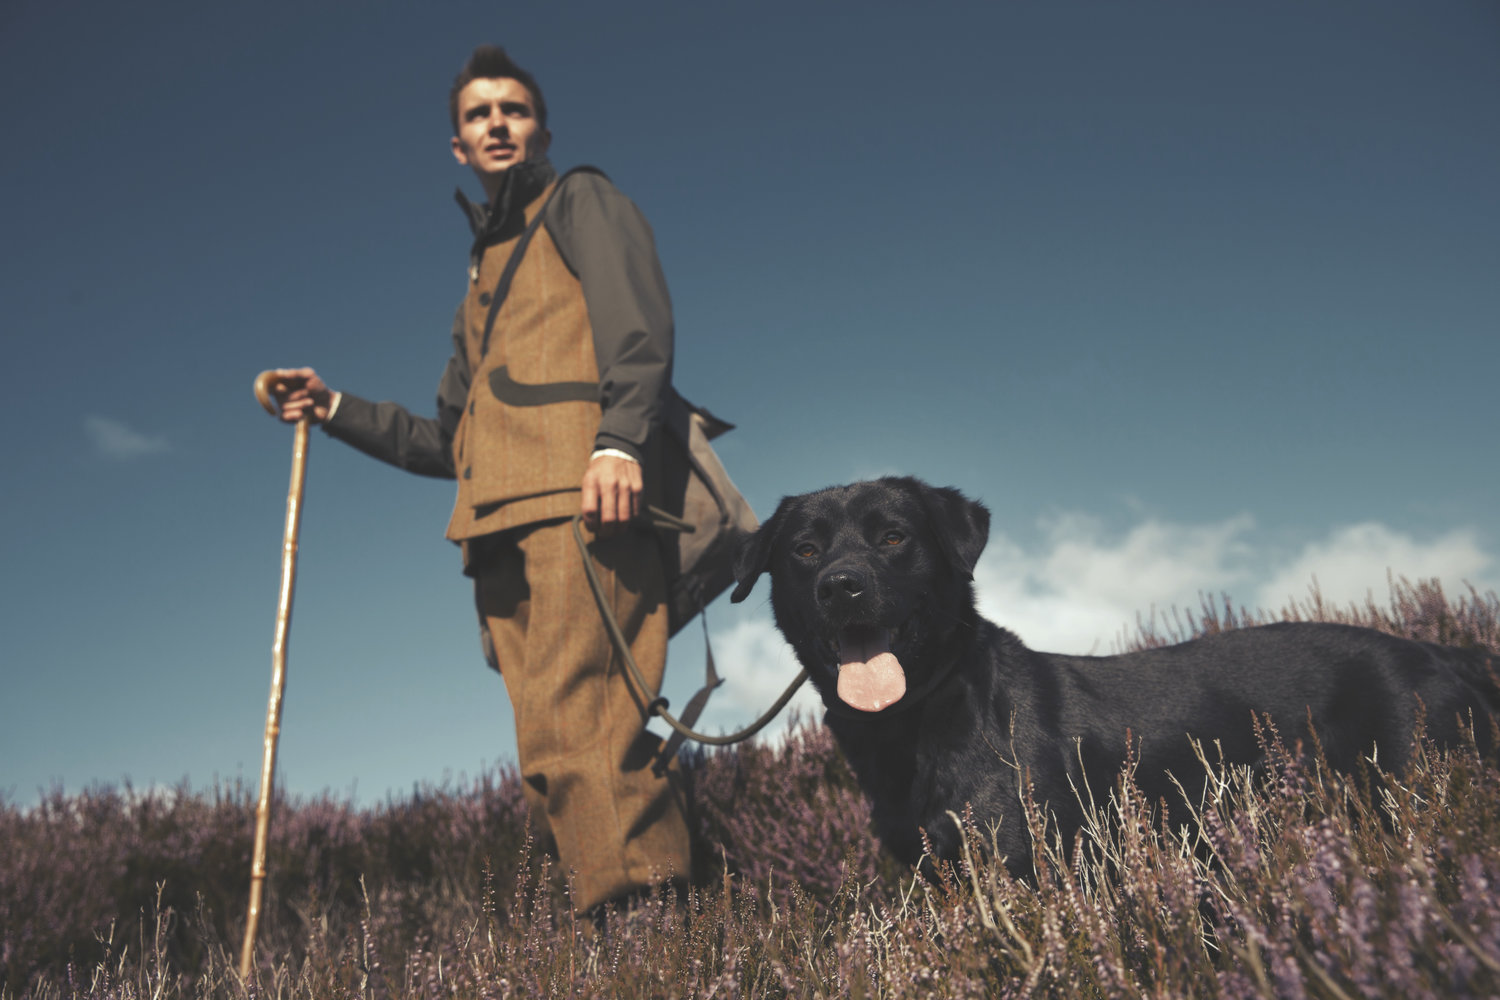 Lifestyle photography - shooting for grouse - Yorkshire